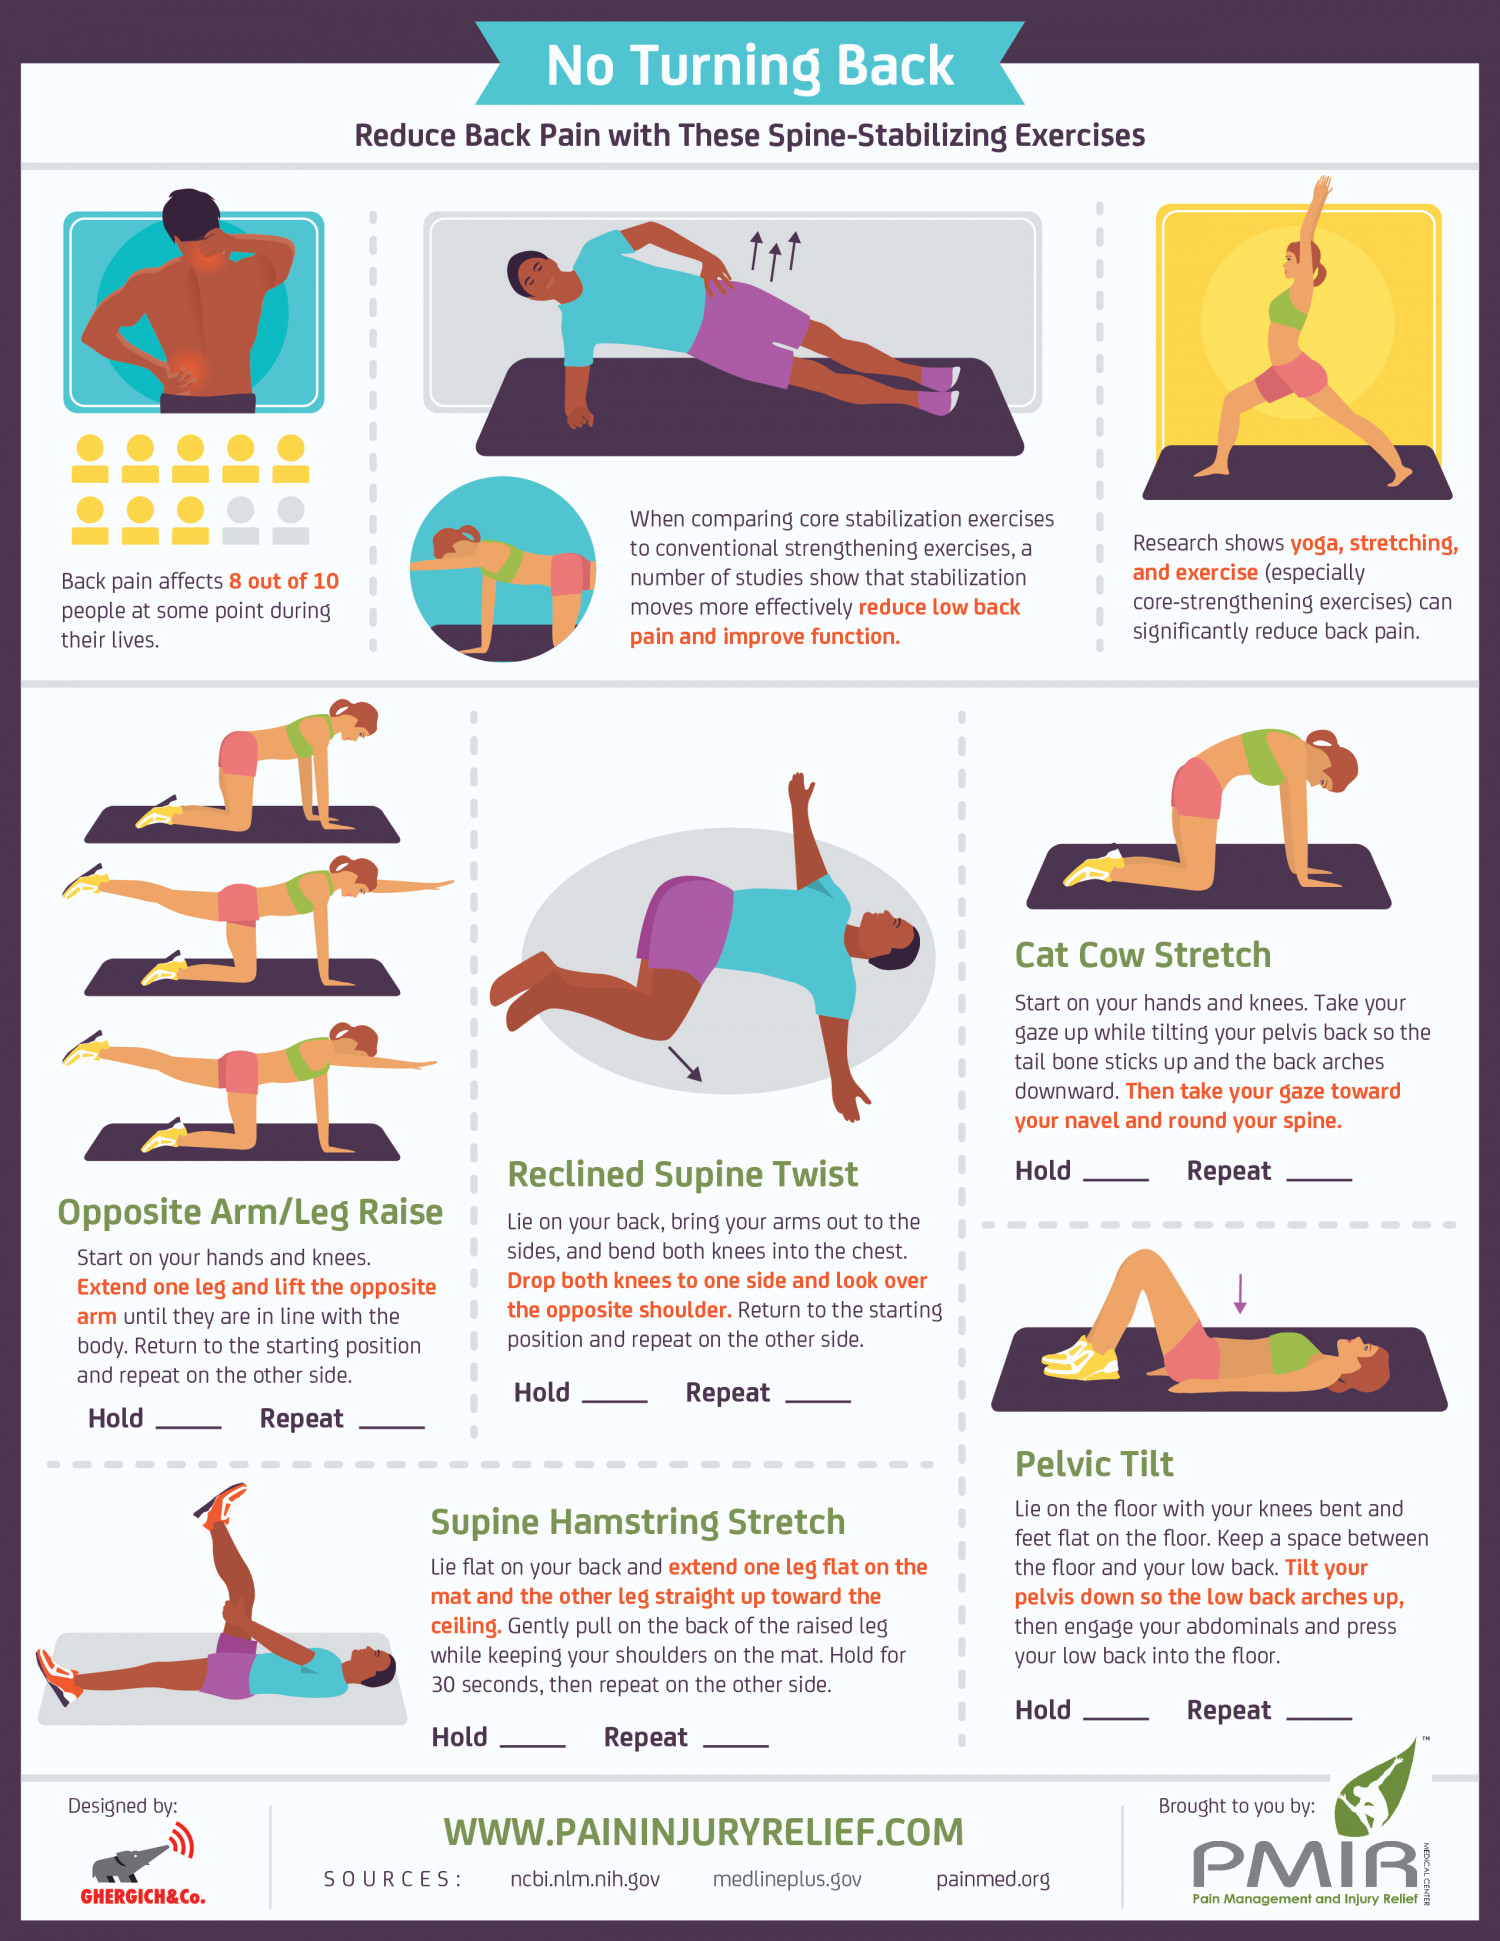 No Turning Back: Reduce Back Pain with These Spine- Stabilizing Exercises Infographic